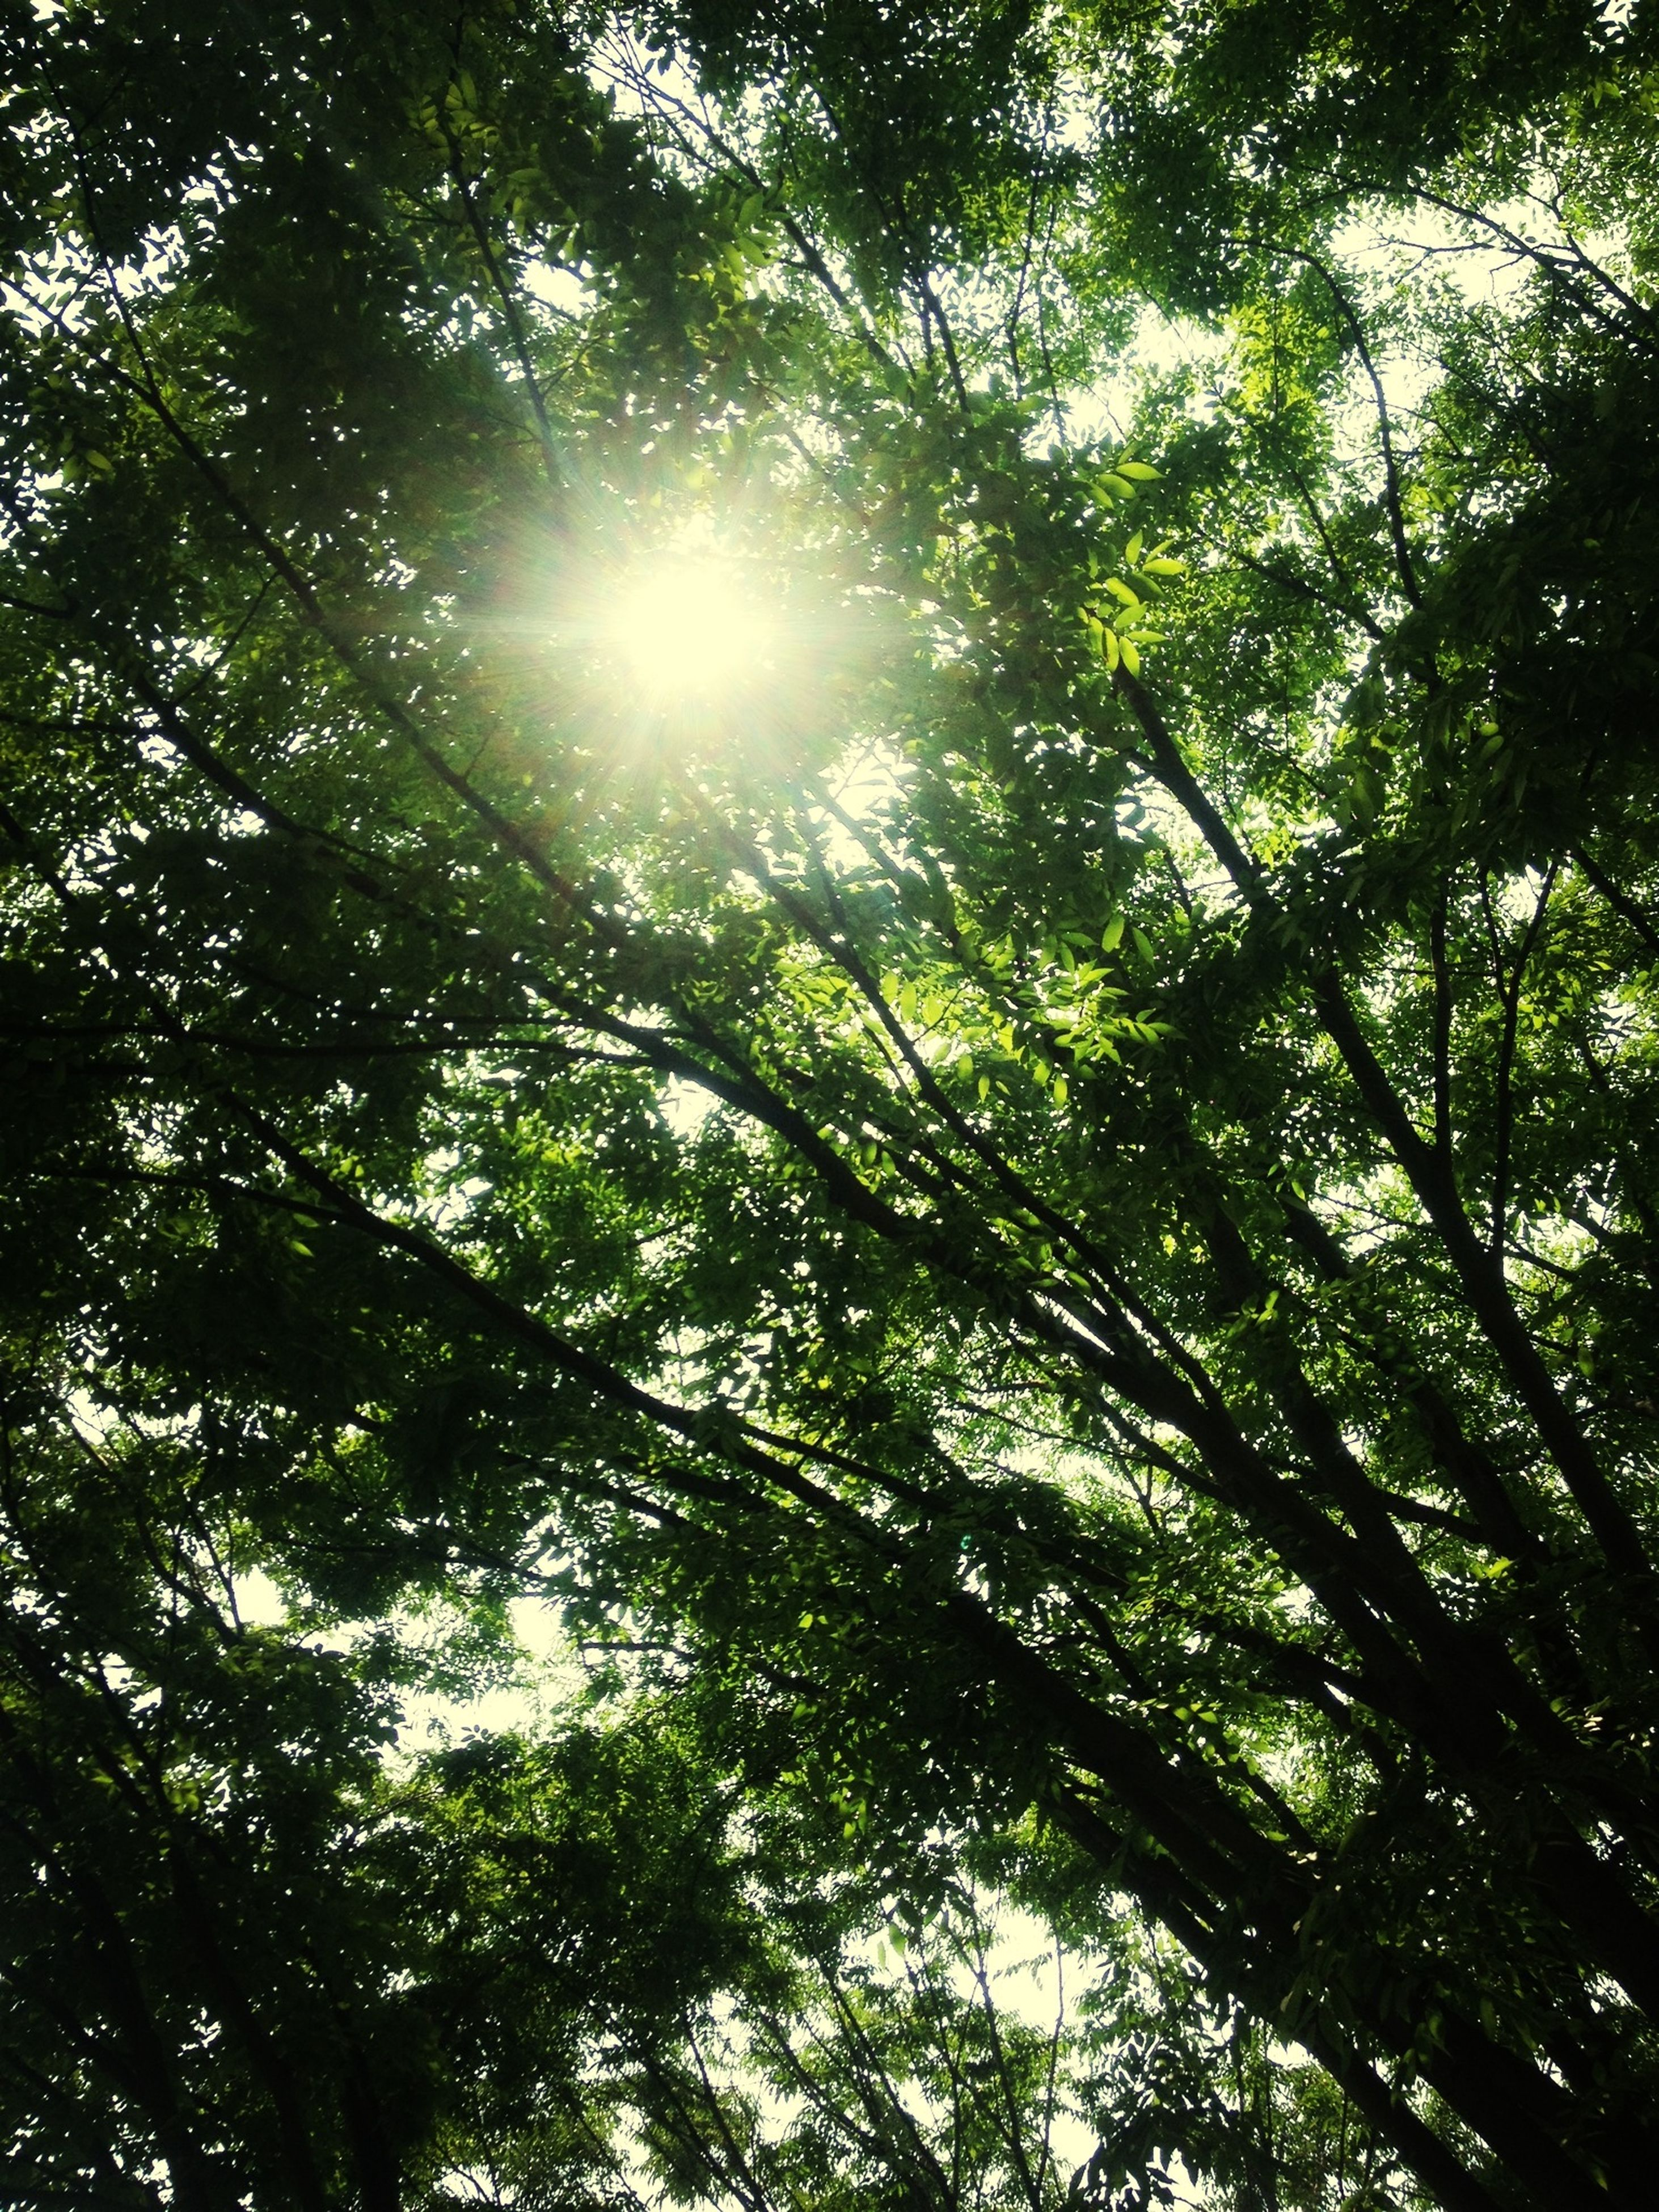 tree, low angle view, sun, sunbeam, growth, sunlight, branch, lens flare, tranquility, nature, beauty in nature, sky, bright, sunny, day, back lit, forest, scenics, streaming, outdoors